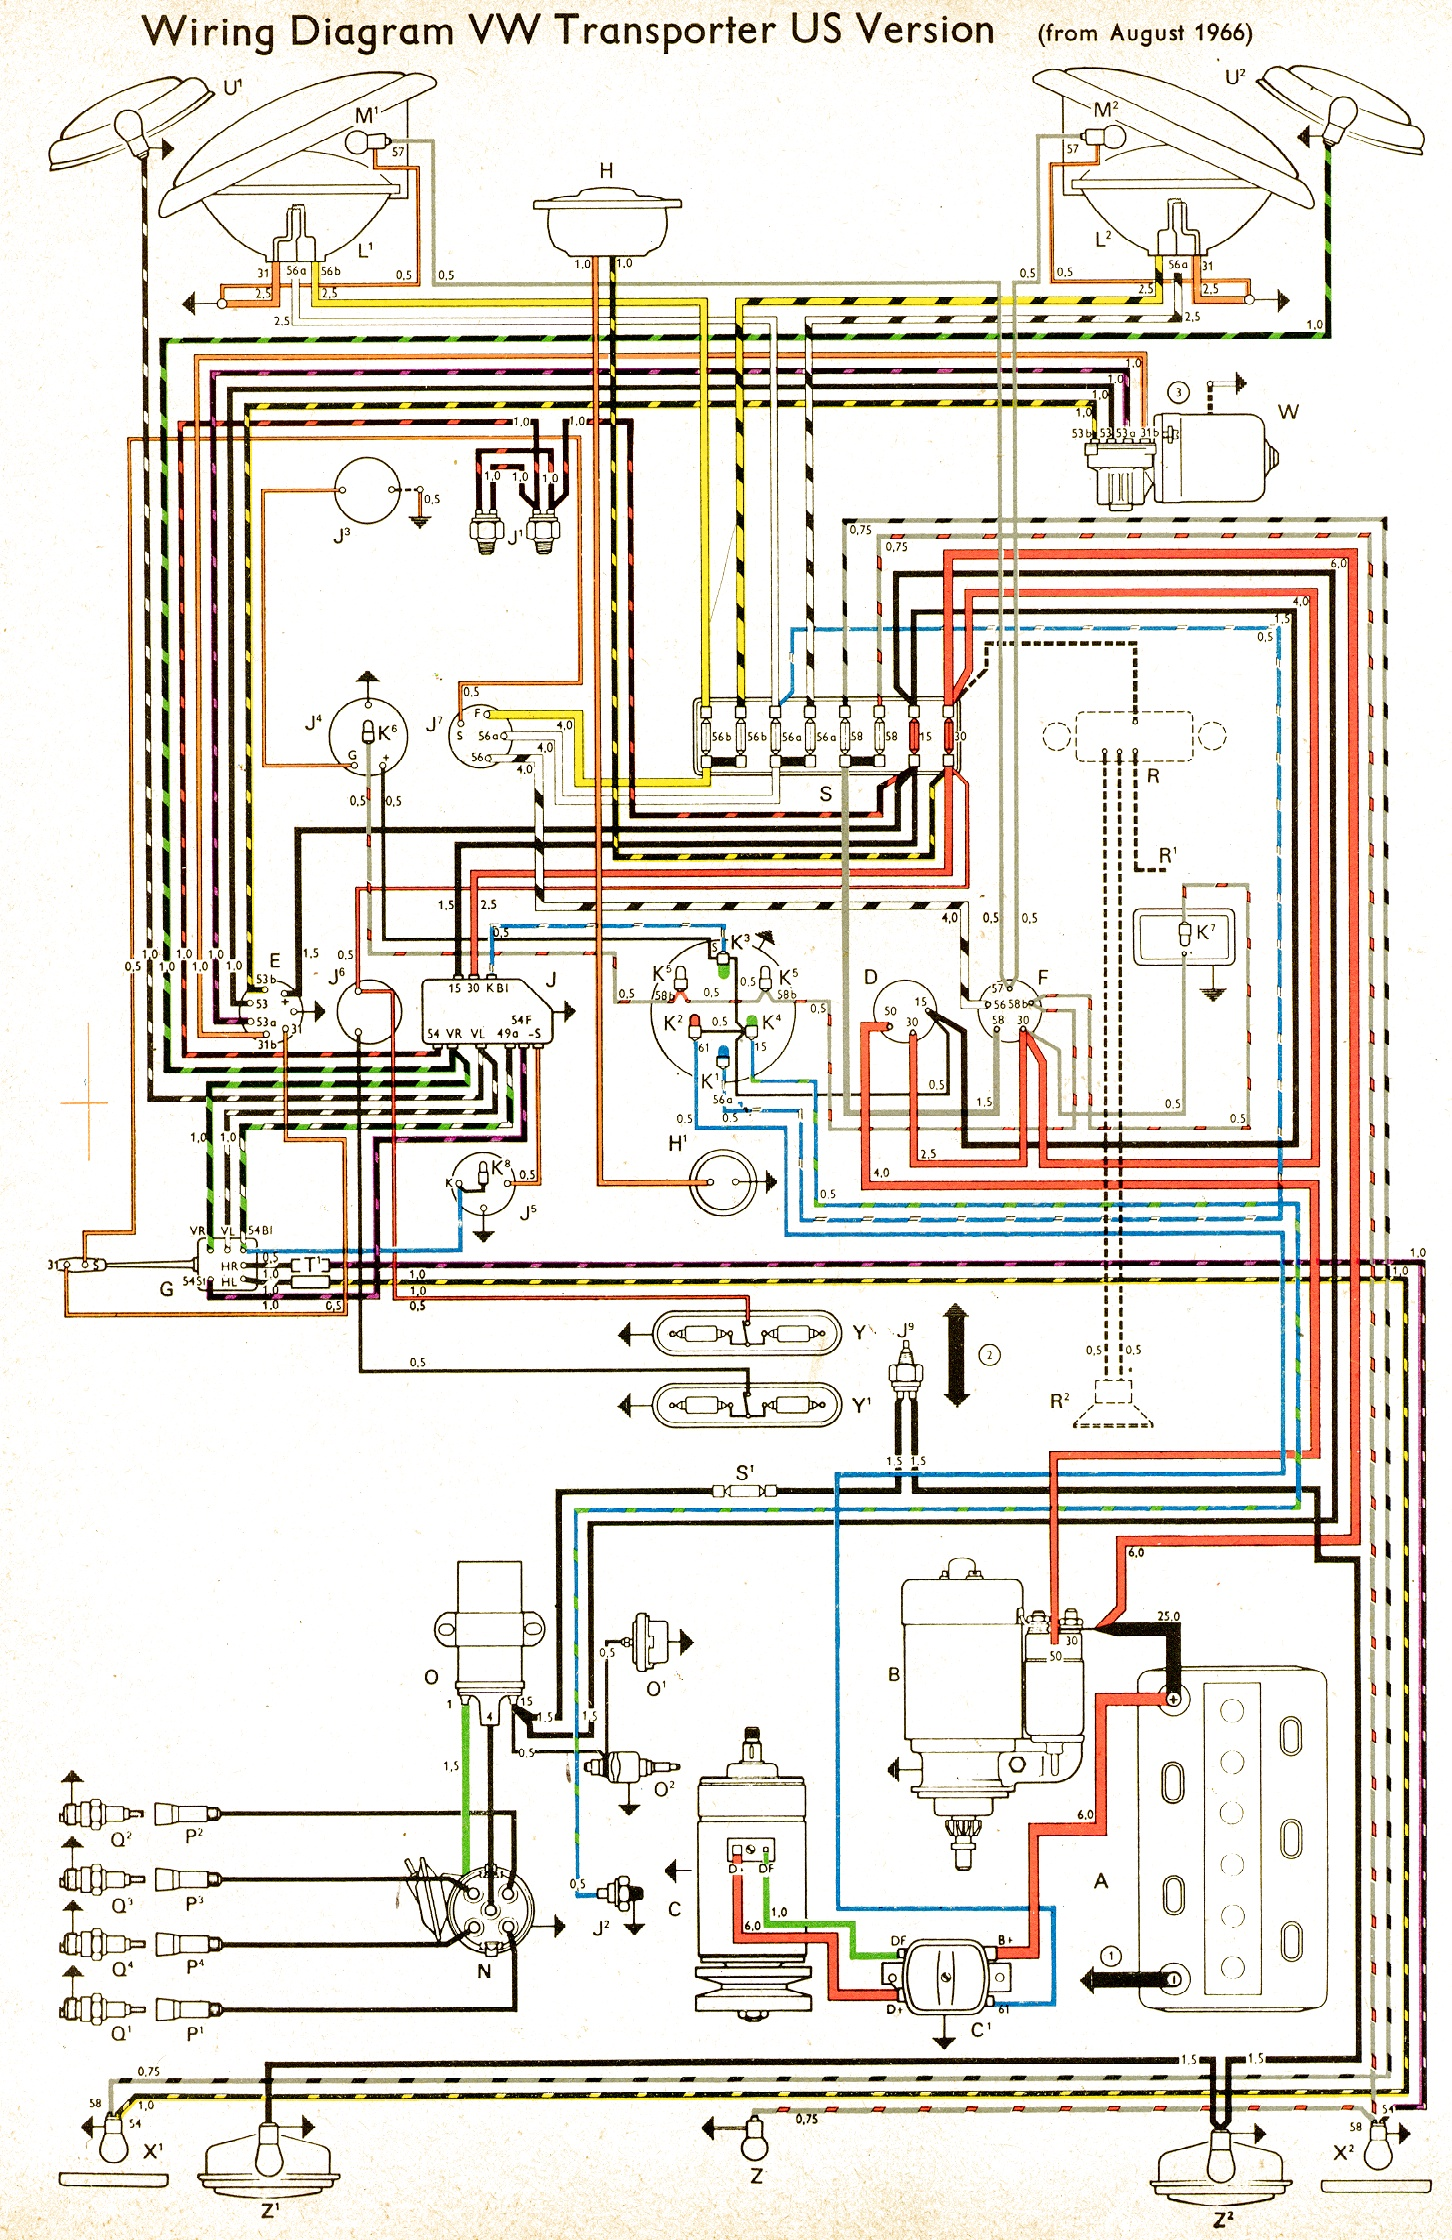 Wire Diagram For Vw Trusted Wiring Veloster Mirror Vintagebus Com Bus And Other Diagrams Rh Radio Vector Vec012amp